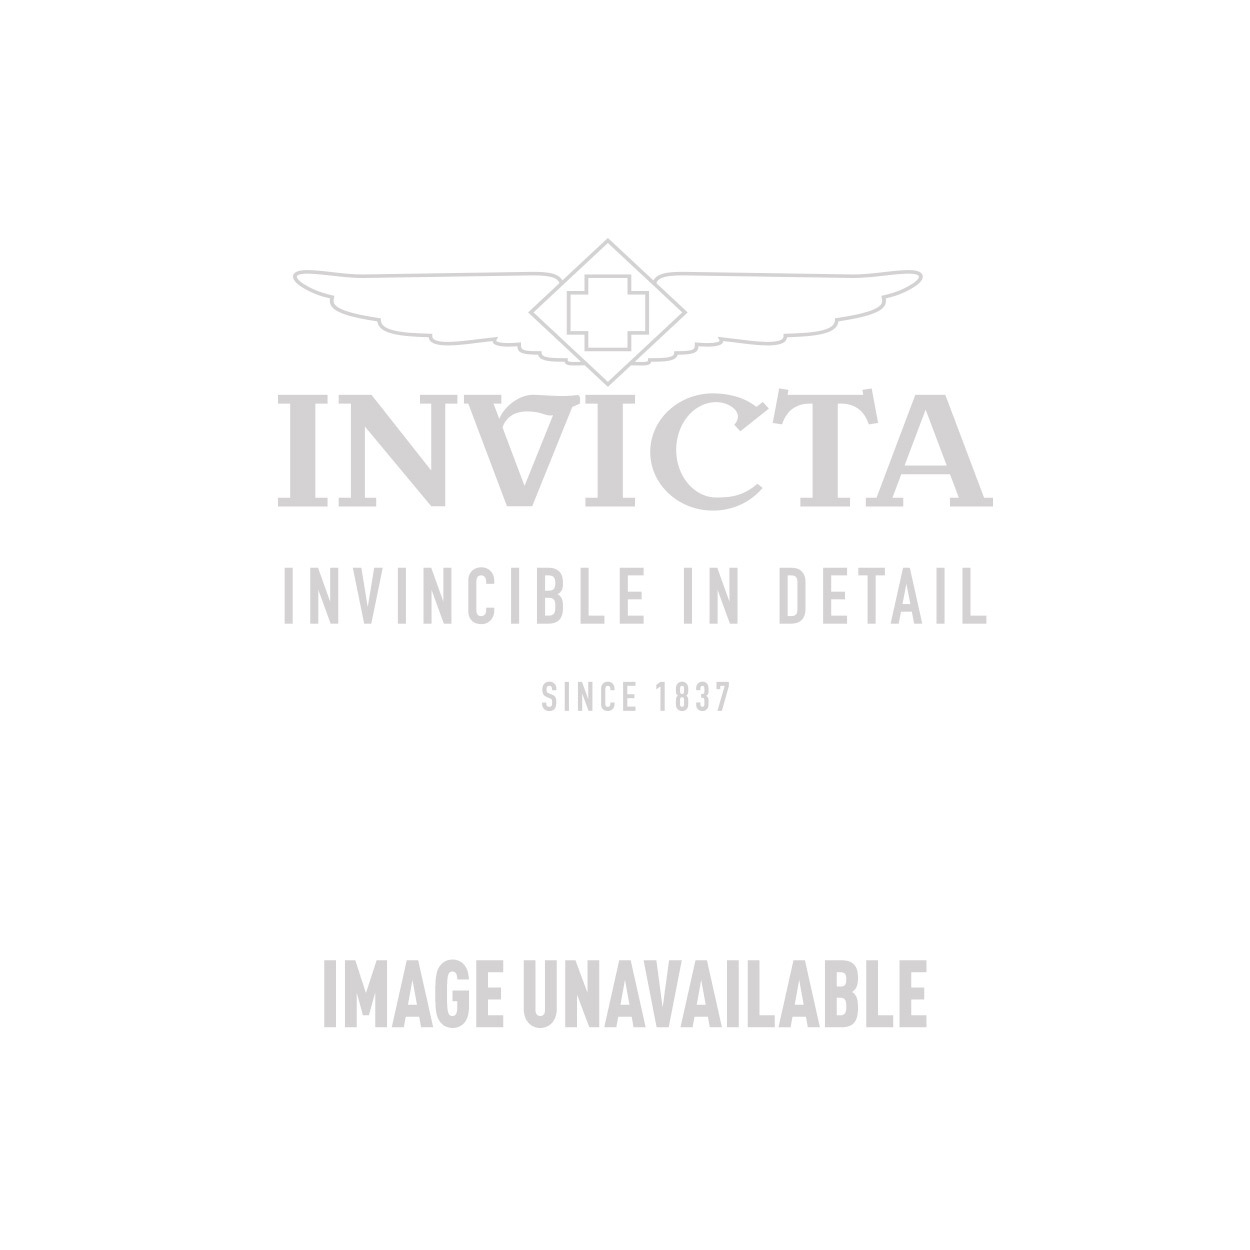 Invicta Reserve Swiss Made Quartz Watch - Gold, Gunmetal case with Gold, Gunmetal tone Stainless Steel band - Model 13678